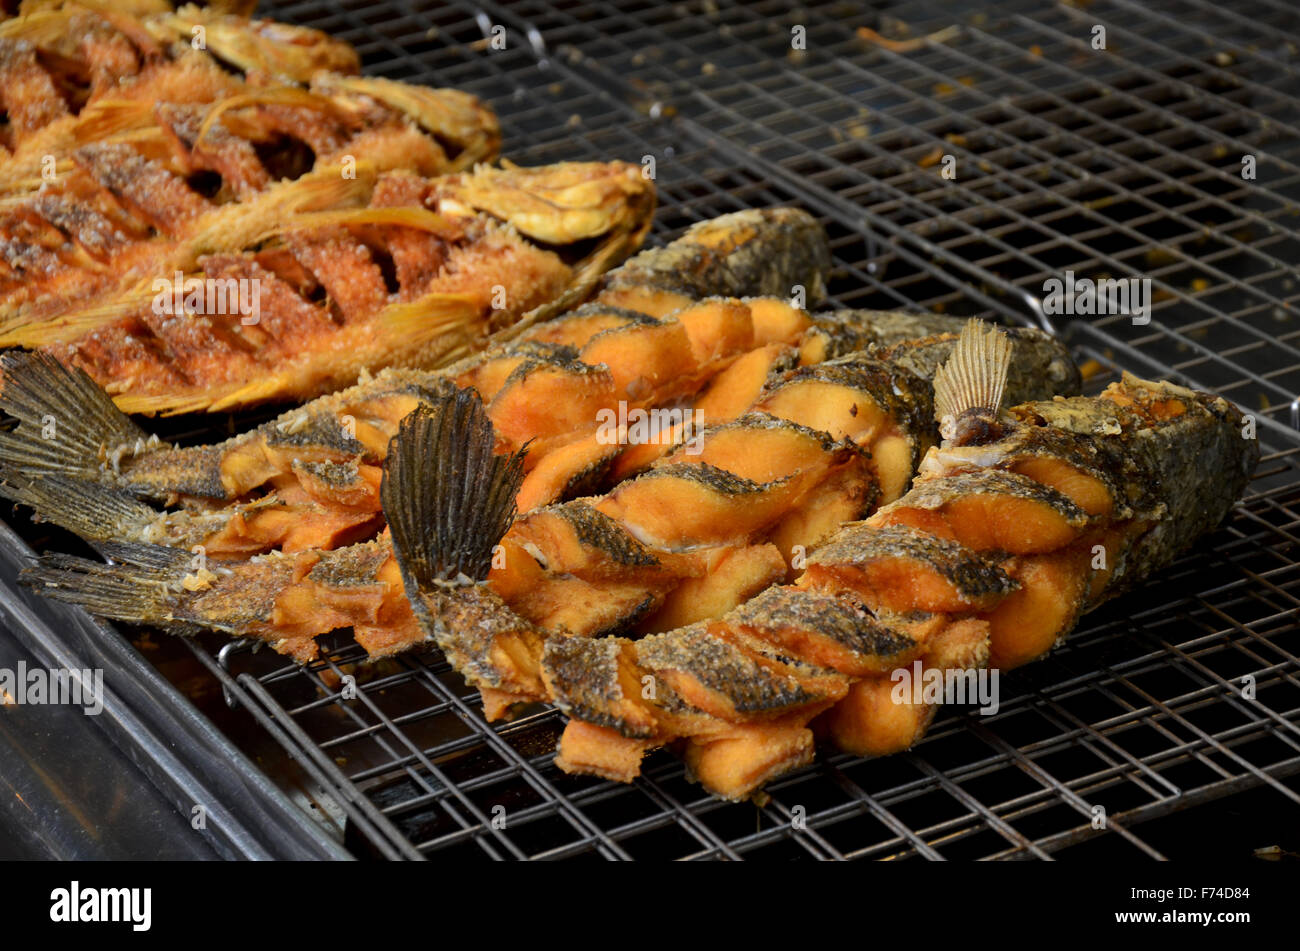 Snake head fish deep fried and tilapia fish deep fried for for Fish meal for sale